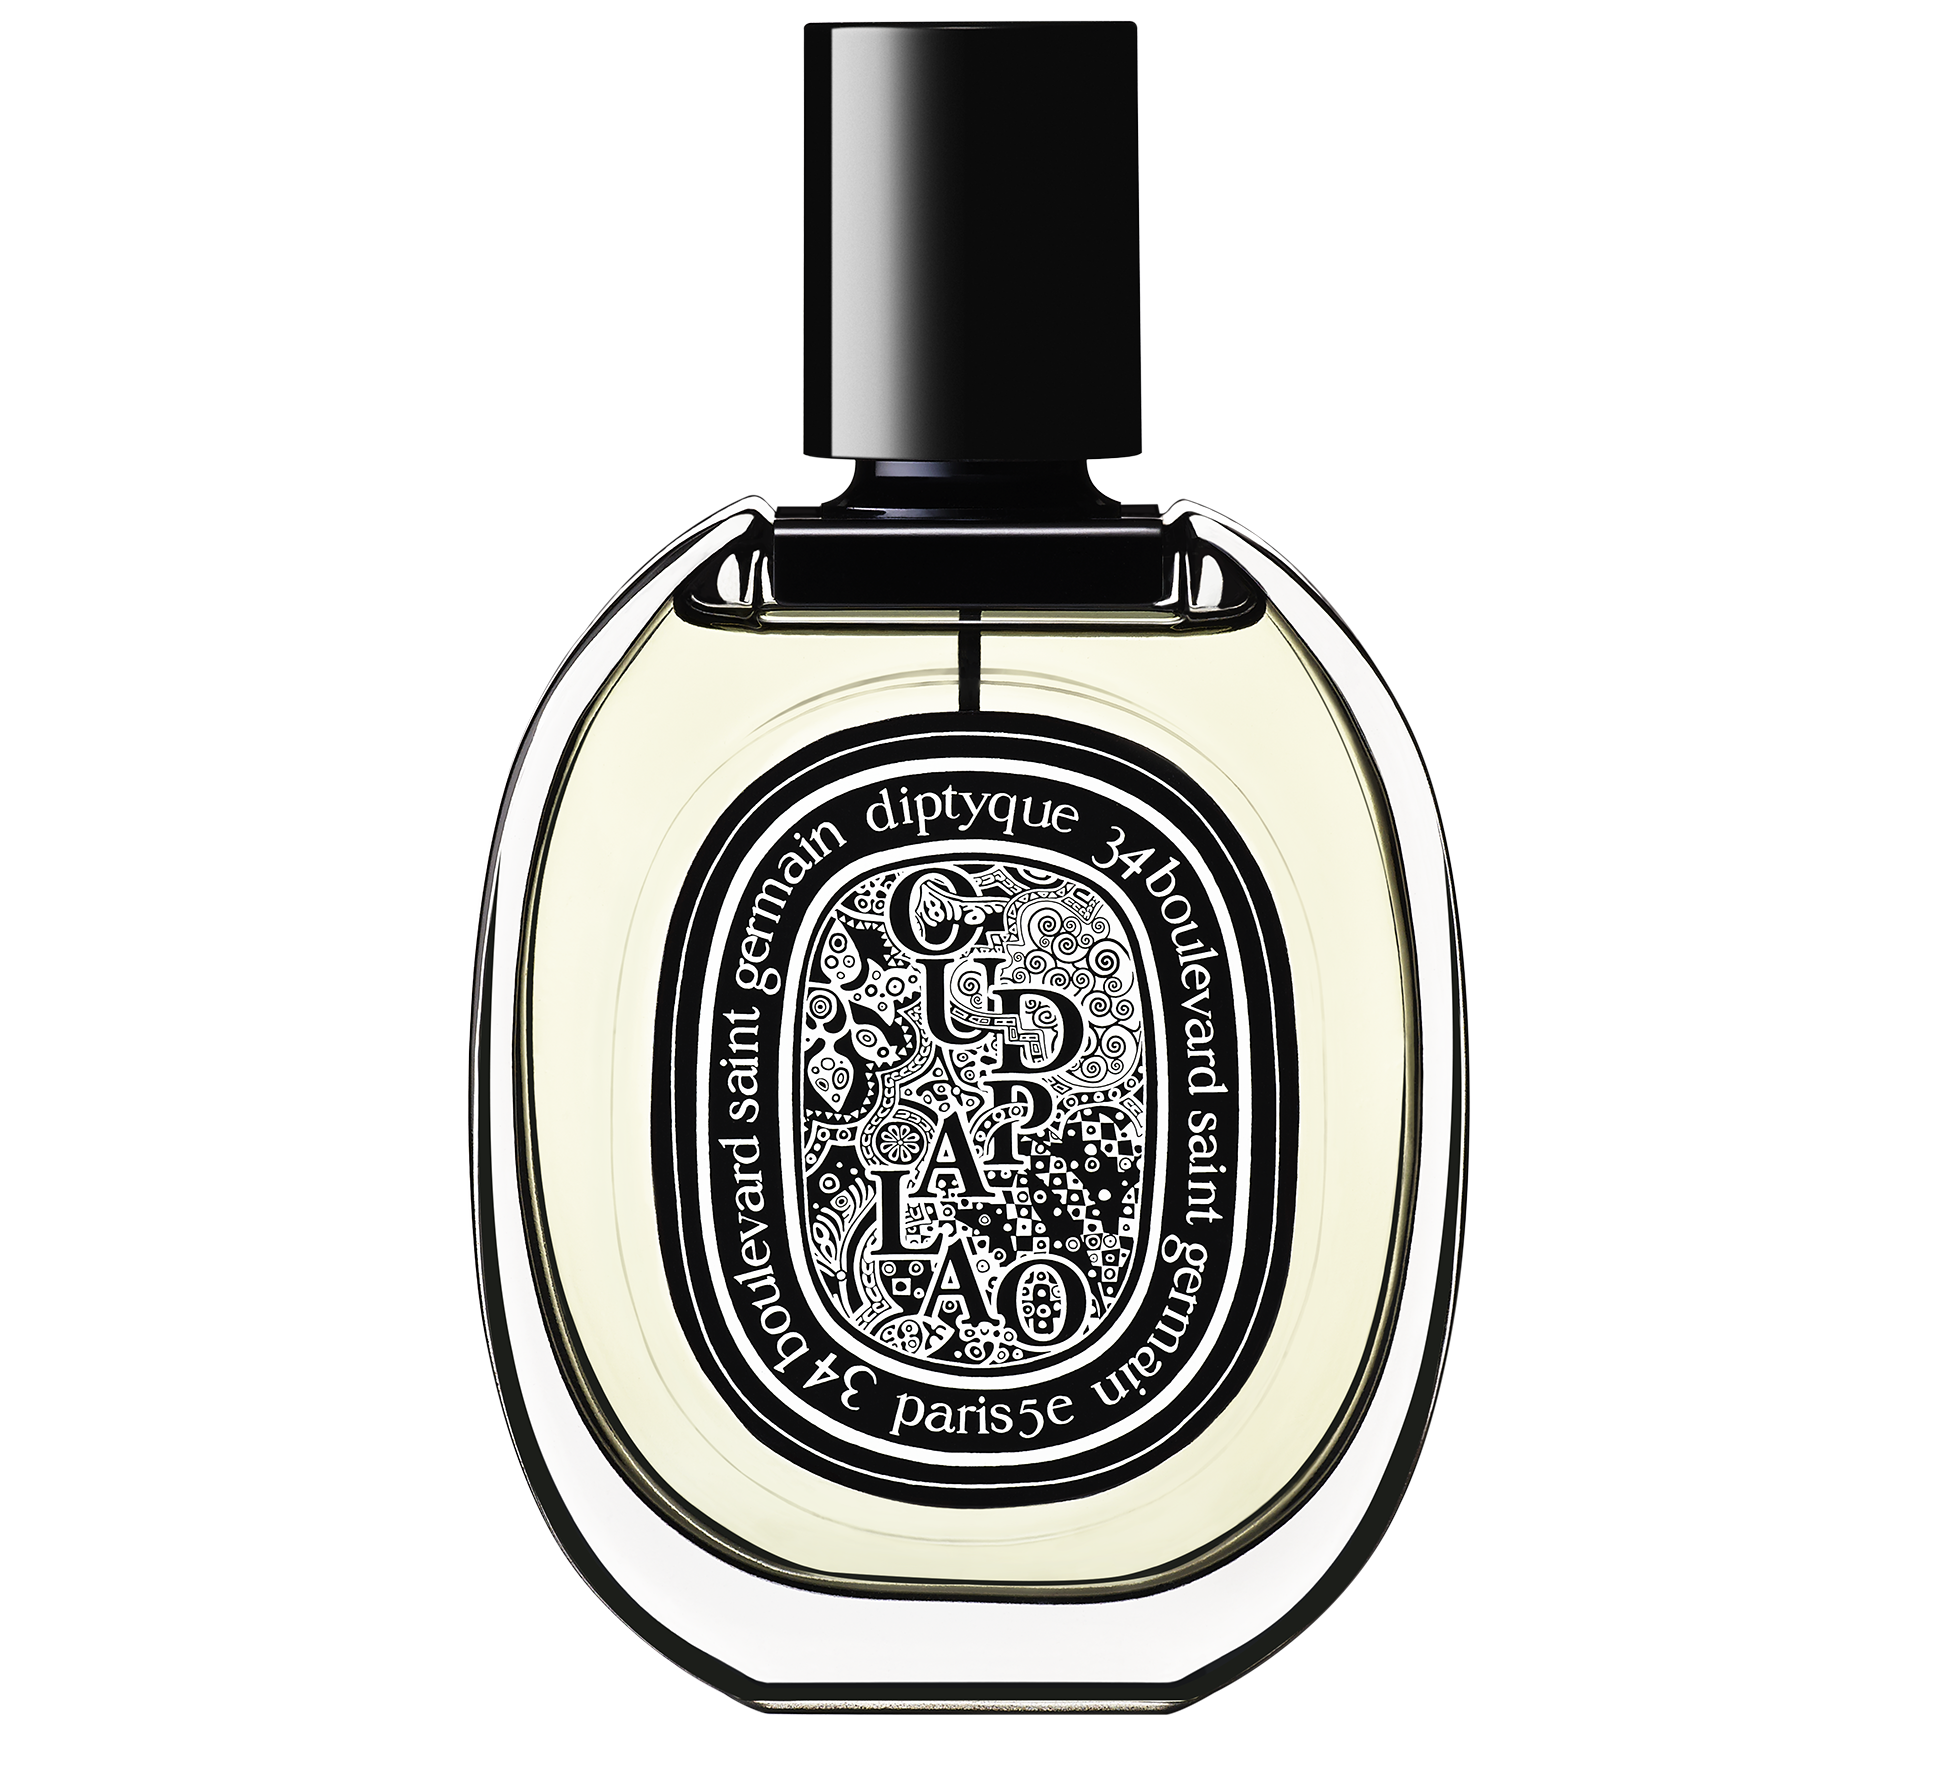 oudpalao_edp_75ml_bottle_png_md